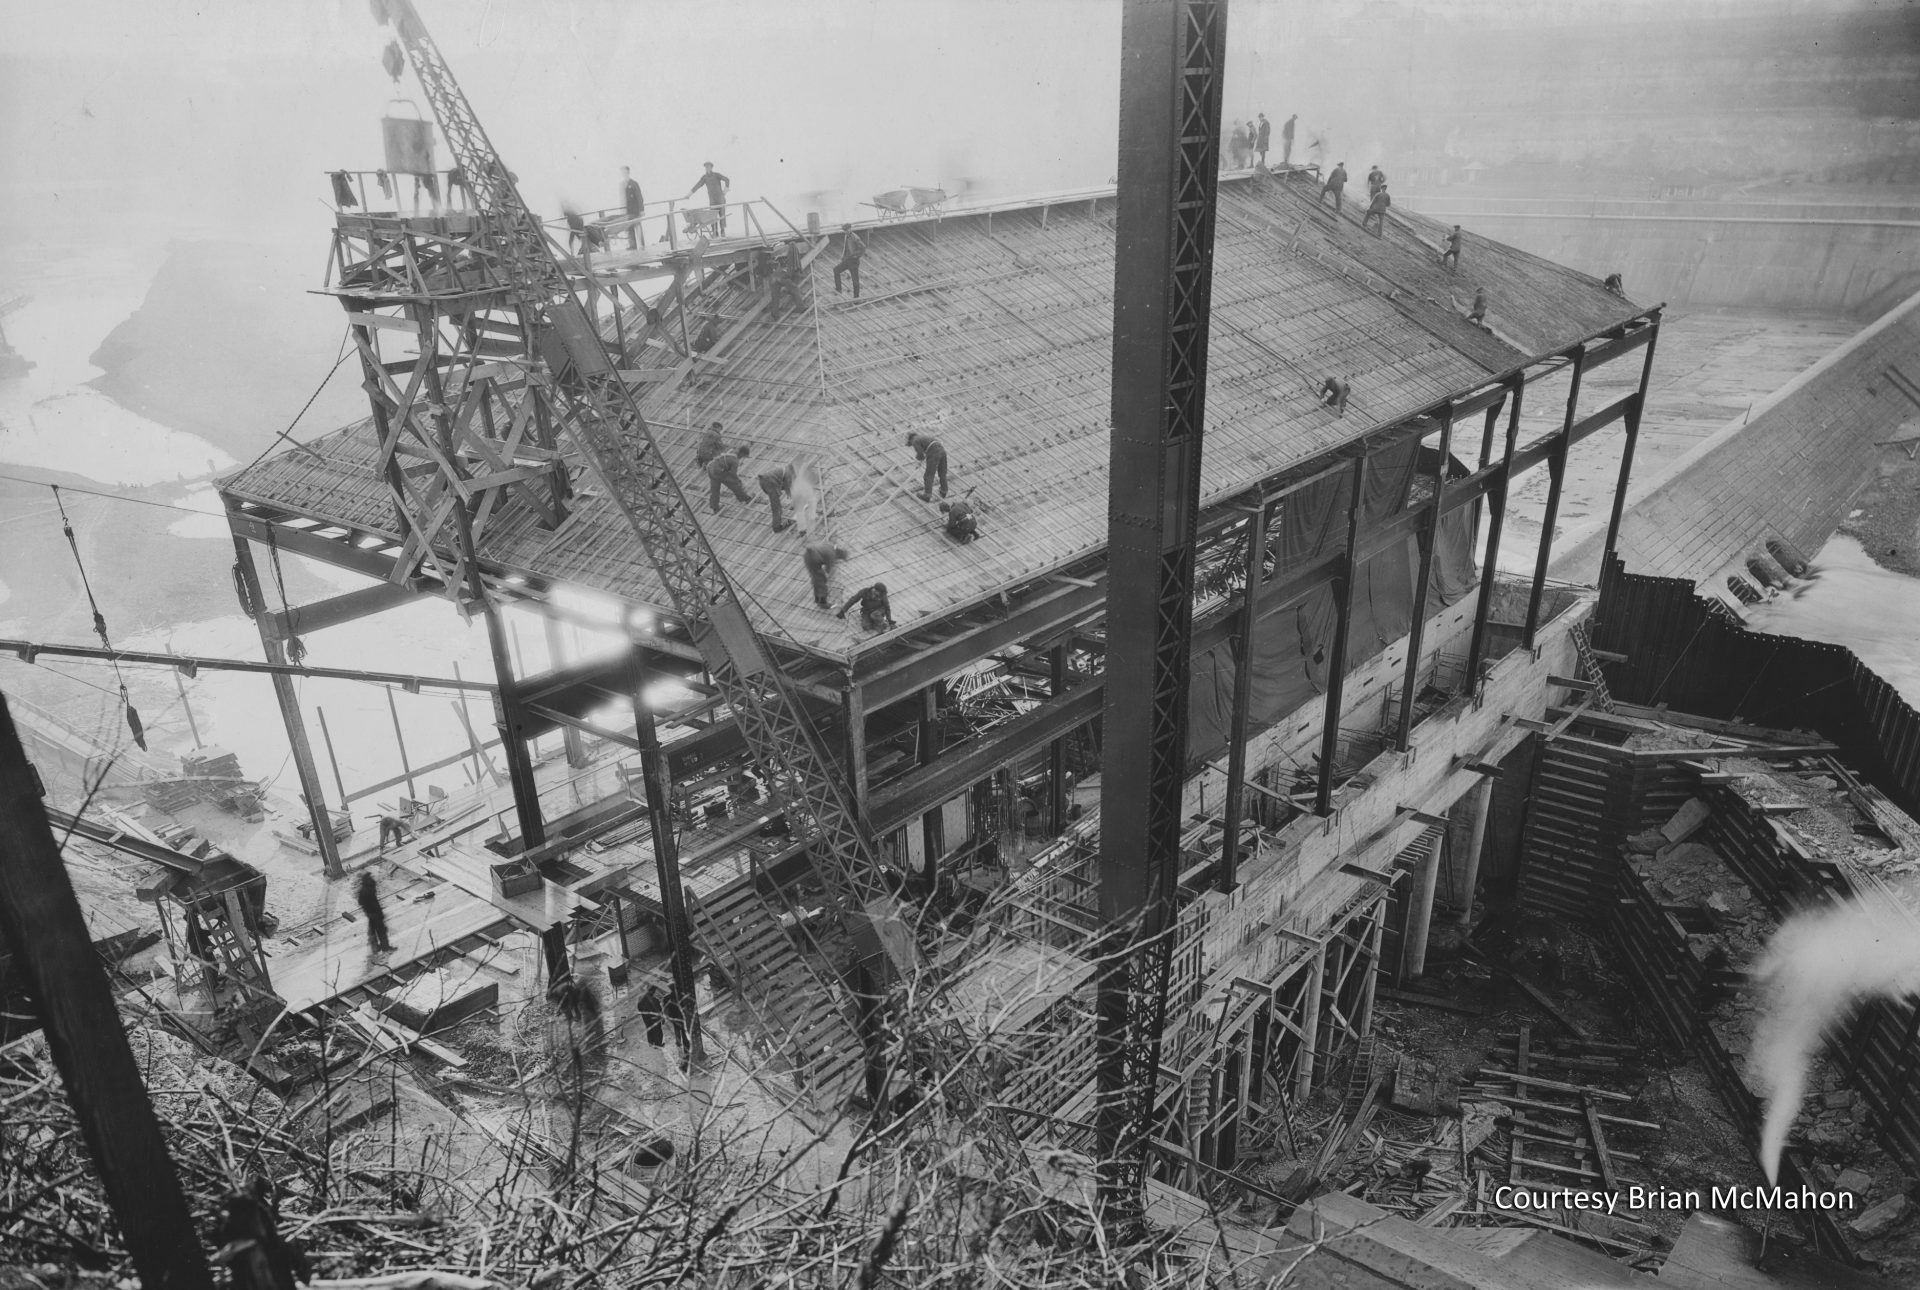 Construction of the hydroelectric plant was well underway in this 1923 photo. The plant began generating electricity in 1924. Courtesy Brian McMahon